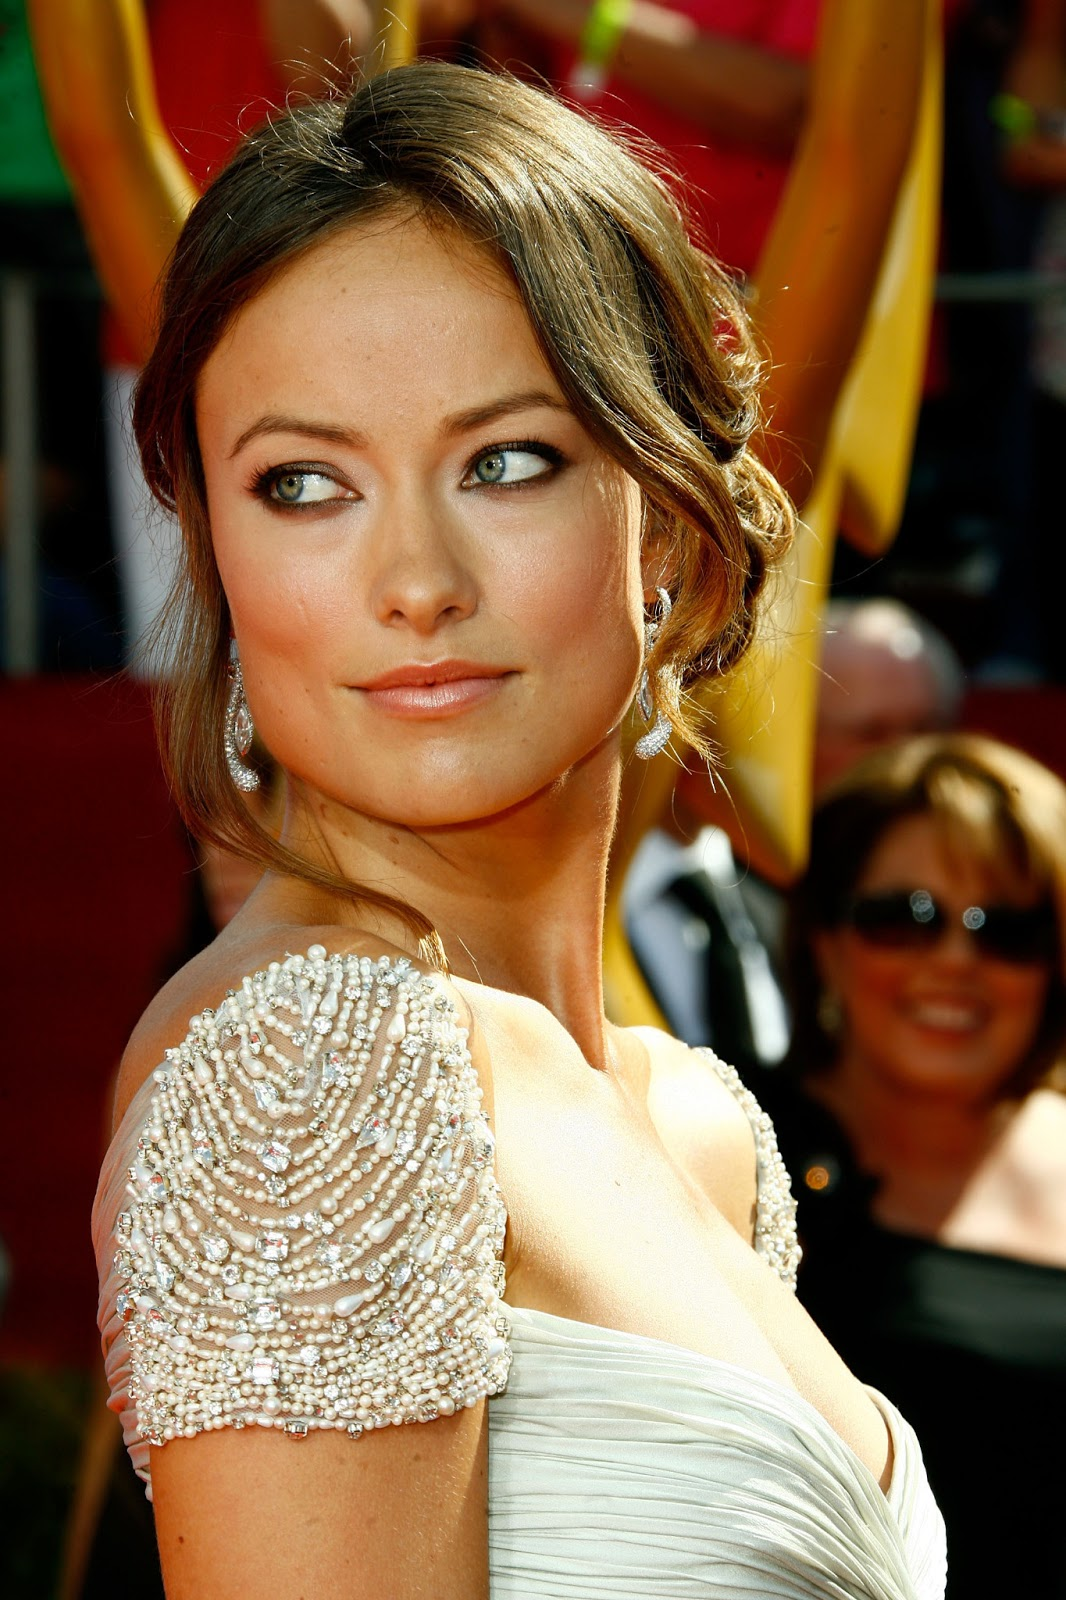 Olivia Wilde Profile And New Pictures 2013: Olivia Wilde Summary